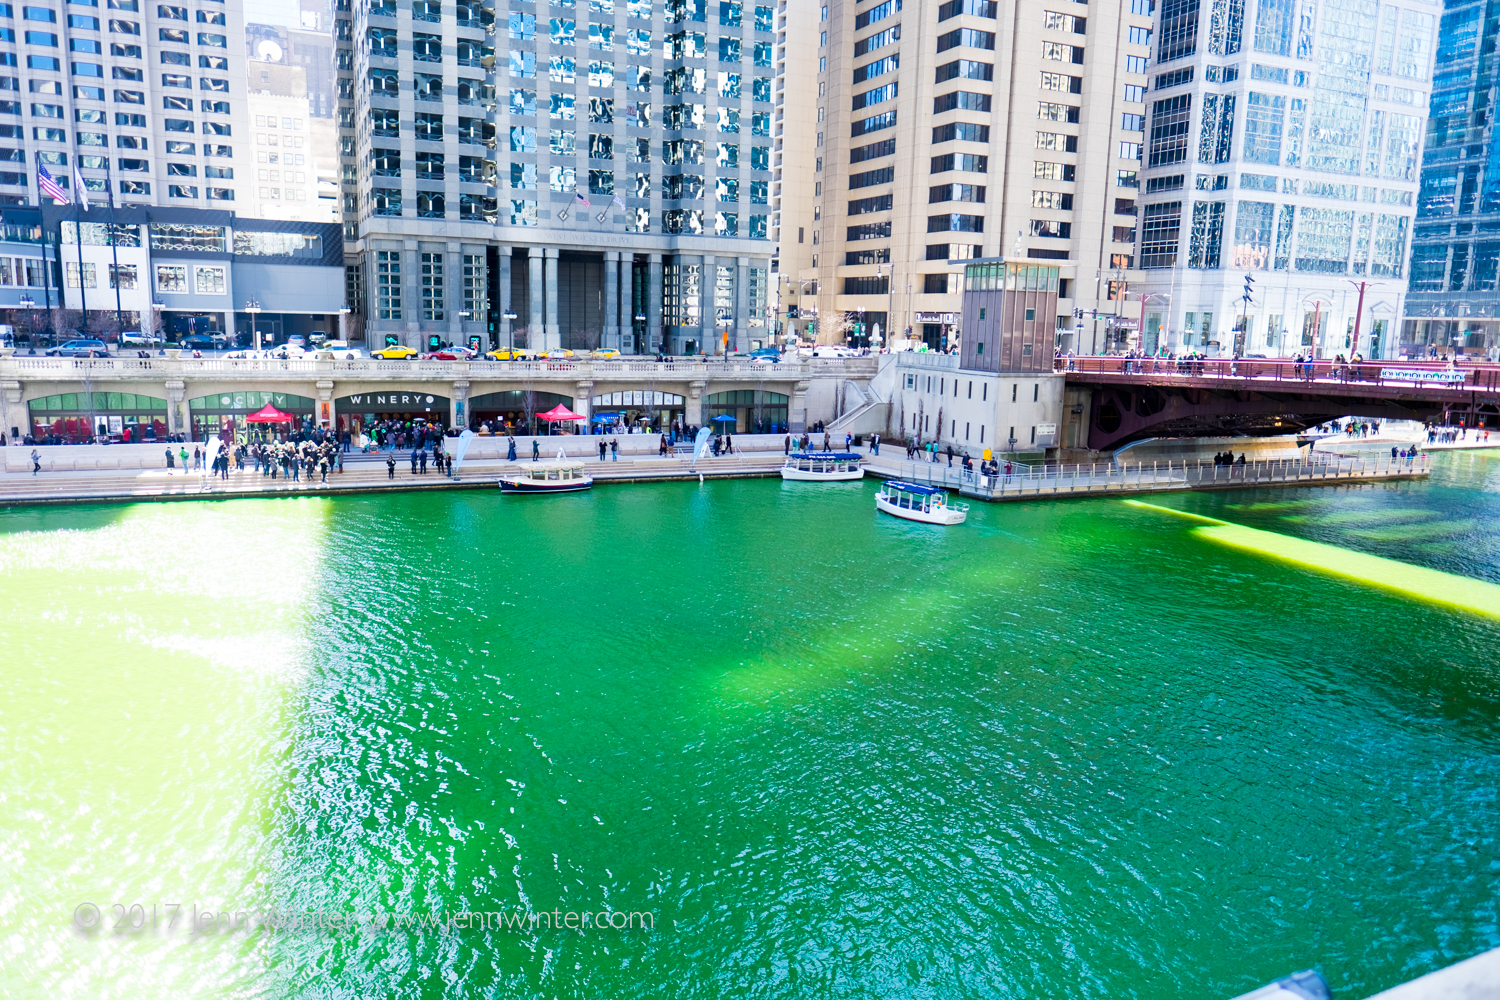 Celebrating St. Patrick's Day on Chicago's Green River